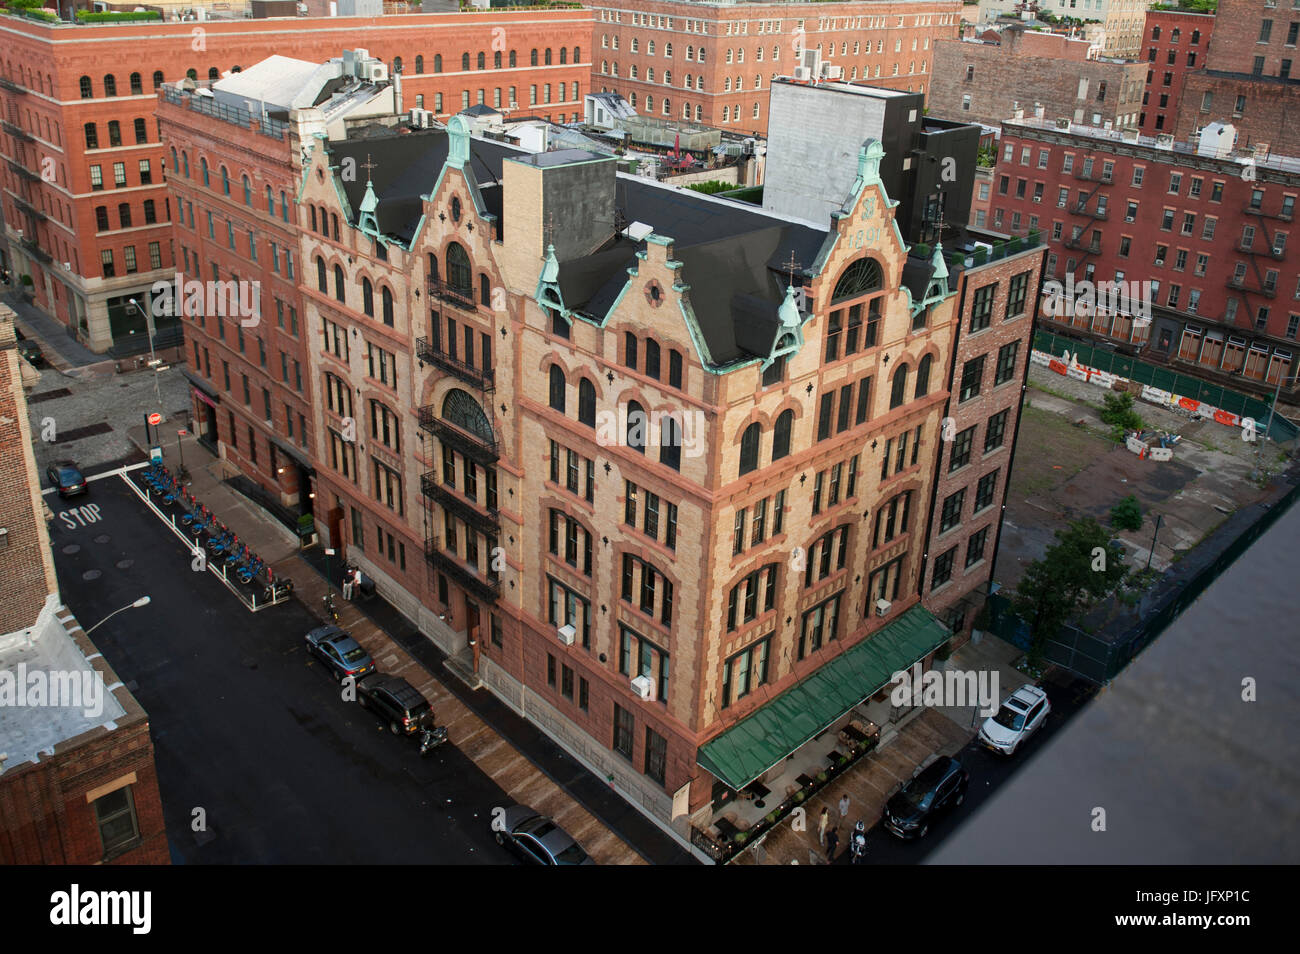 The Fleming Smith warehouse in Tribeca was designed by Stephen Decatur Hatch and built in 1891-1892. It served as - Stock Image